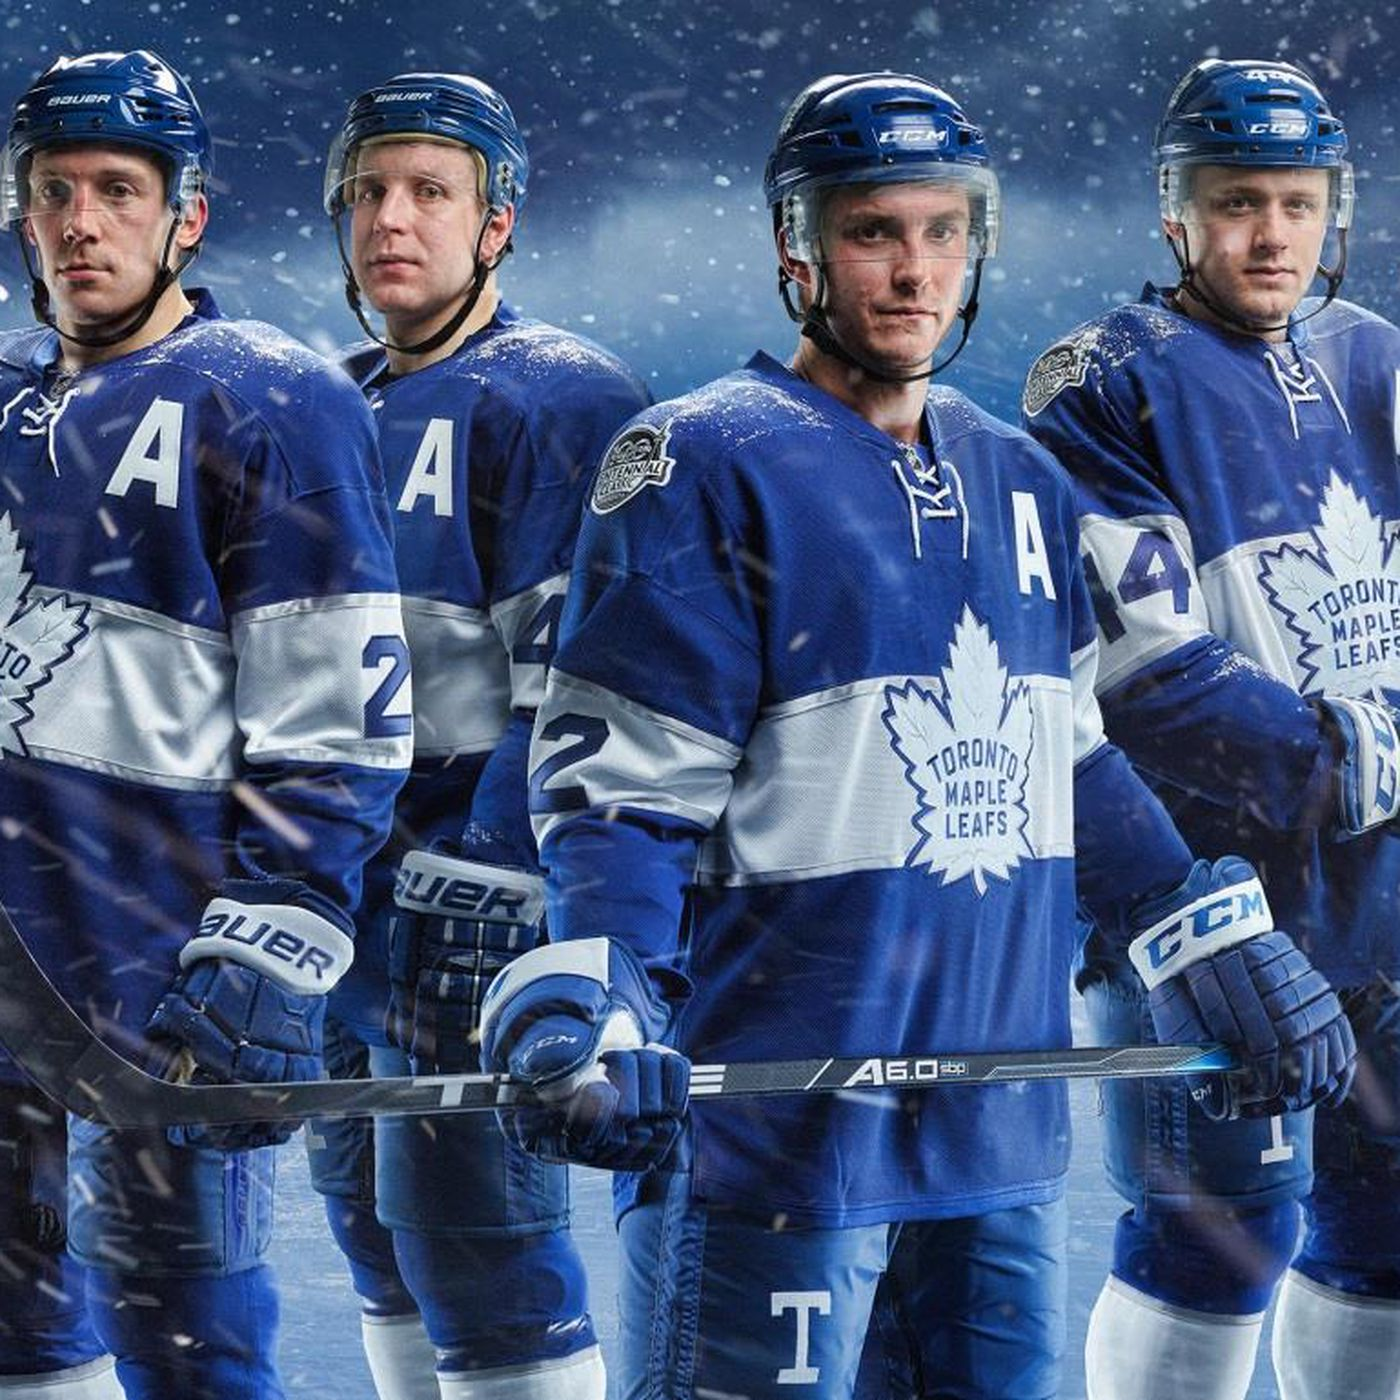 Toronto Maple Leafs 2017 Centennial Classic jerseys officially revealed d2a46fd04